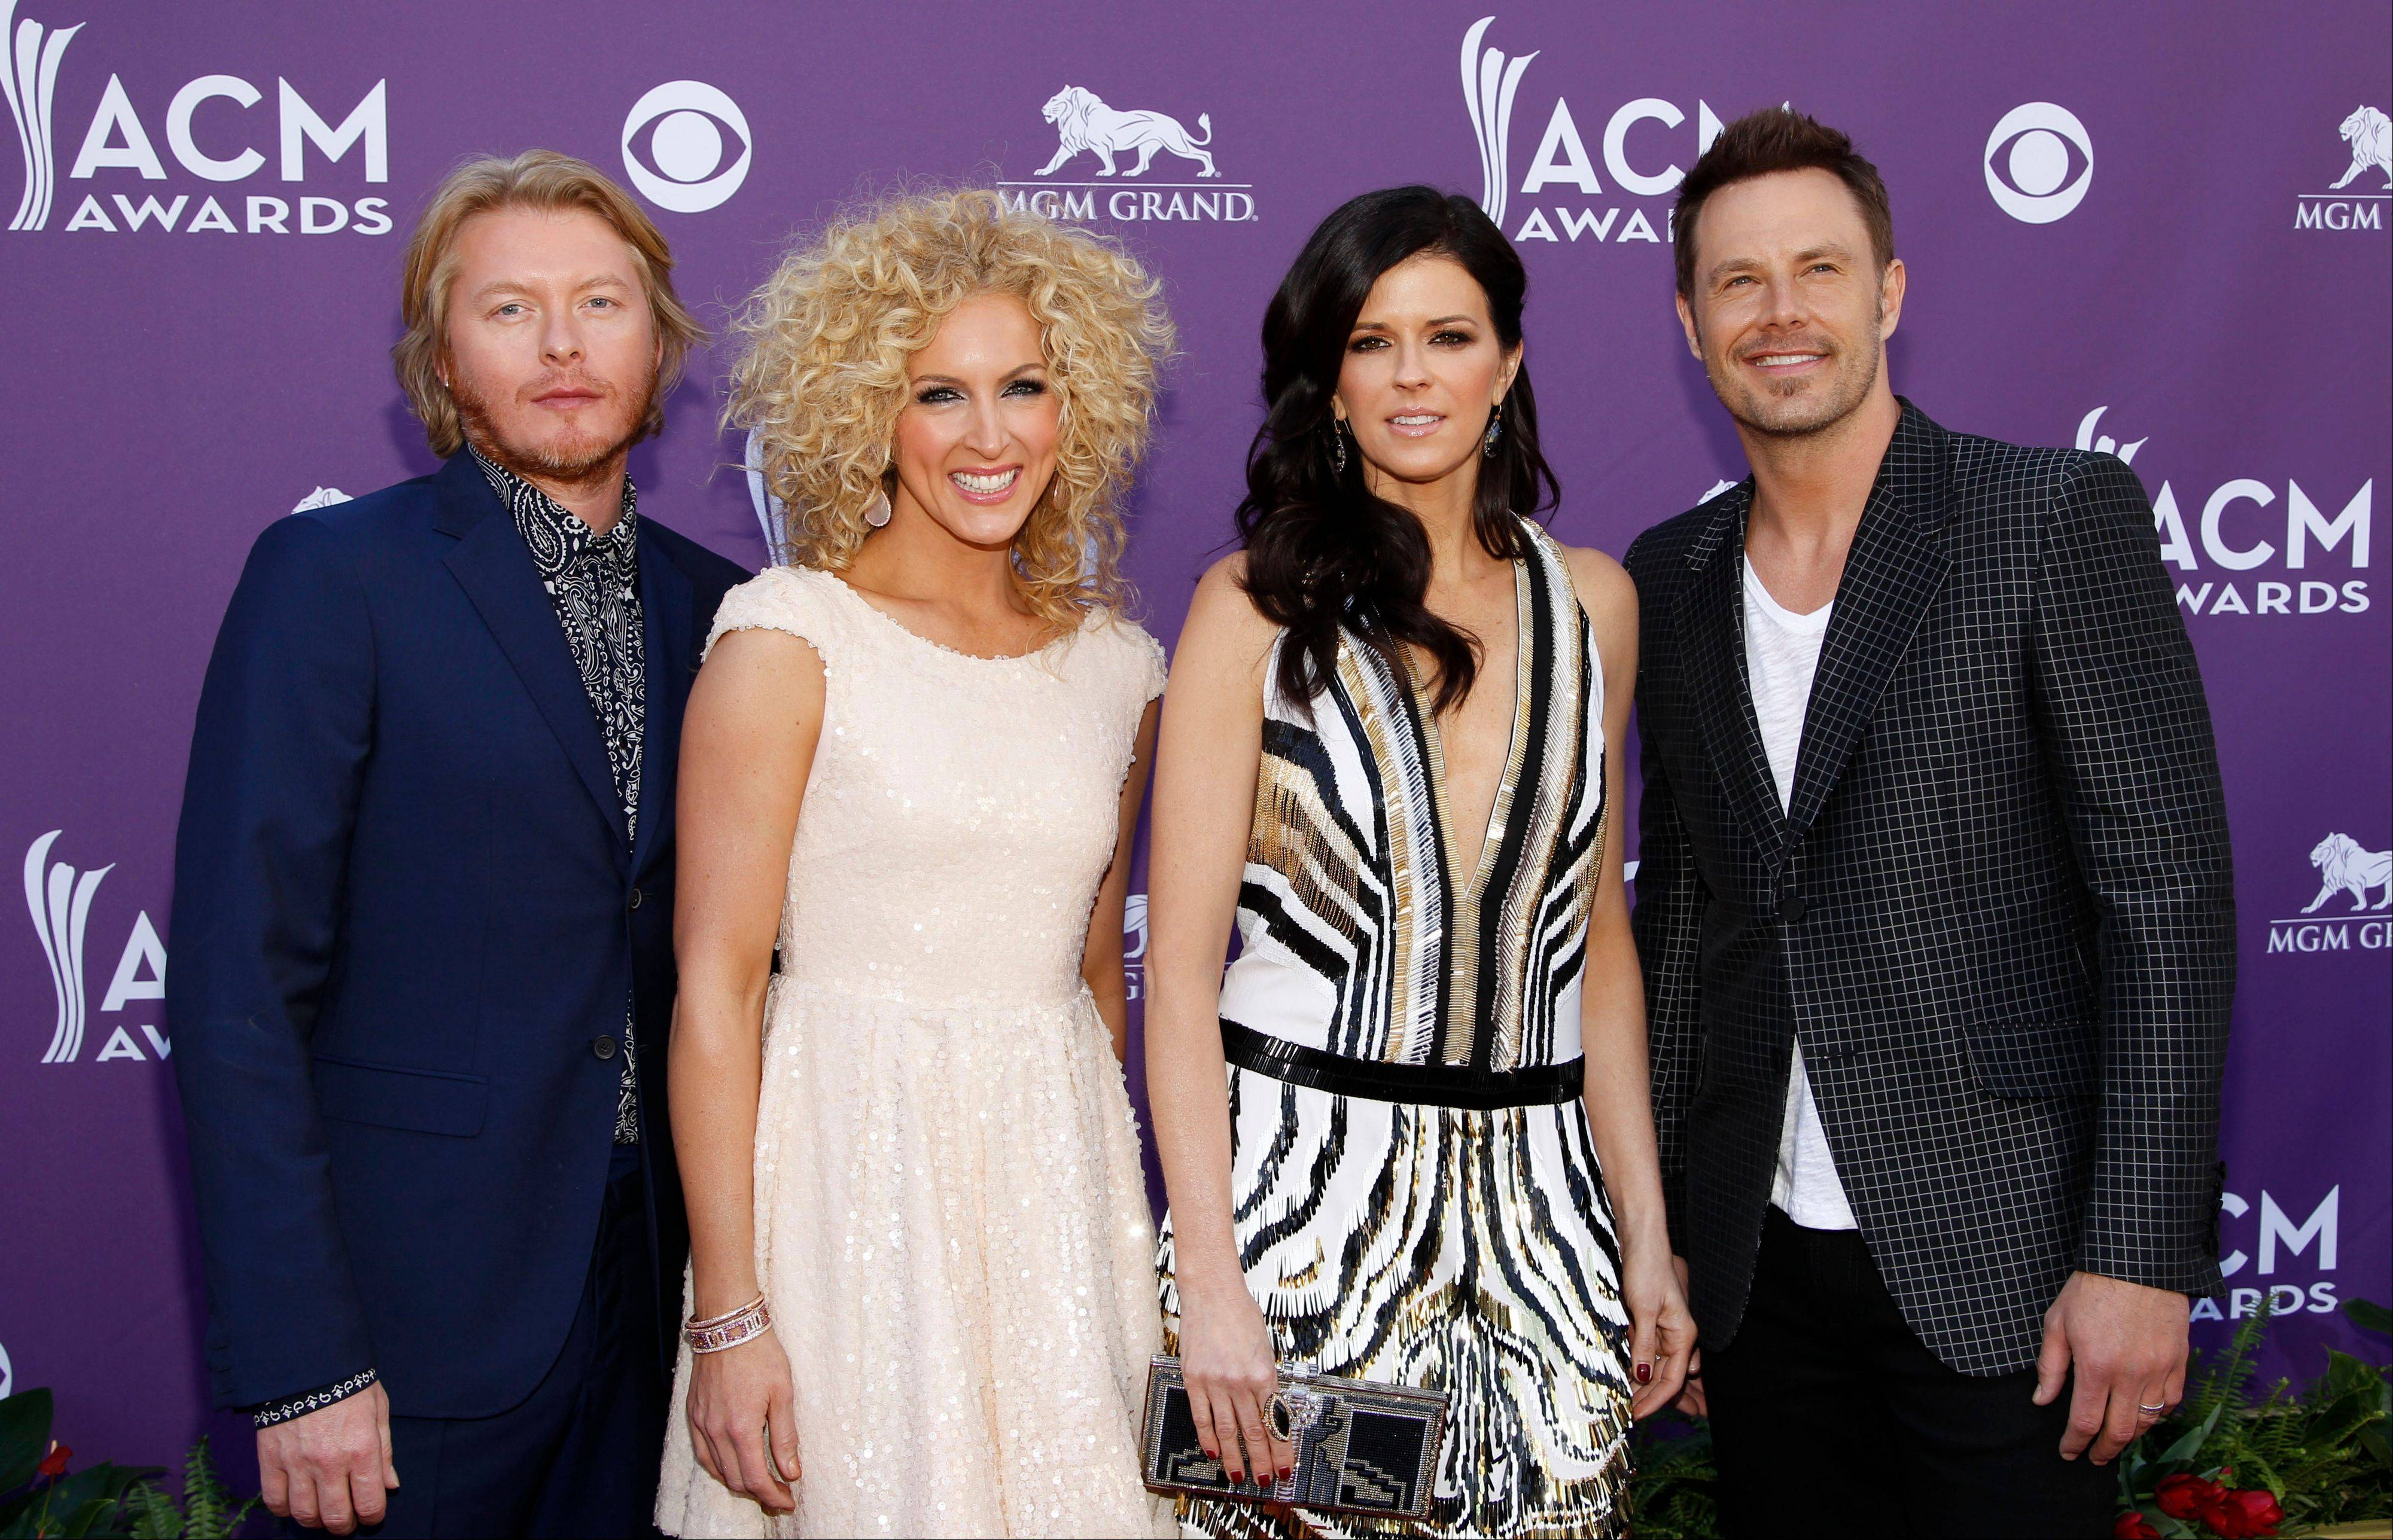 From left, Phillip Sweet, Kimberly Schlapman, Karen Fairchild and Jimi Westbrook, of musical group Little Big Town, arrive at the 47th Annual Academy of Country Music Awards.